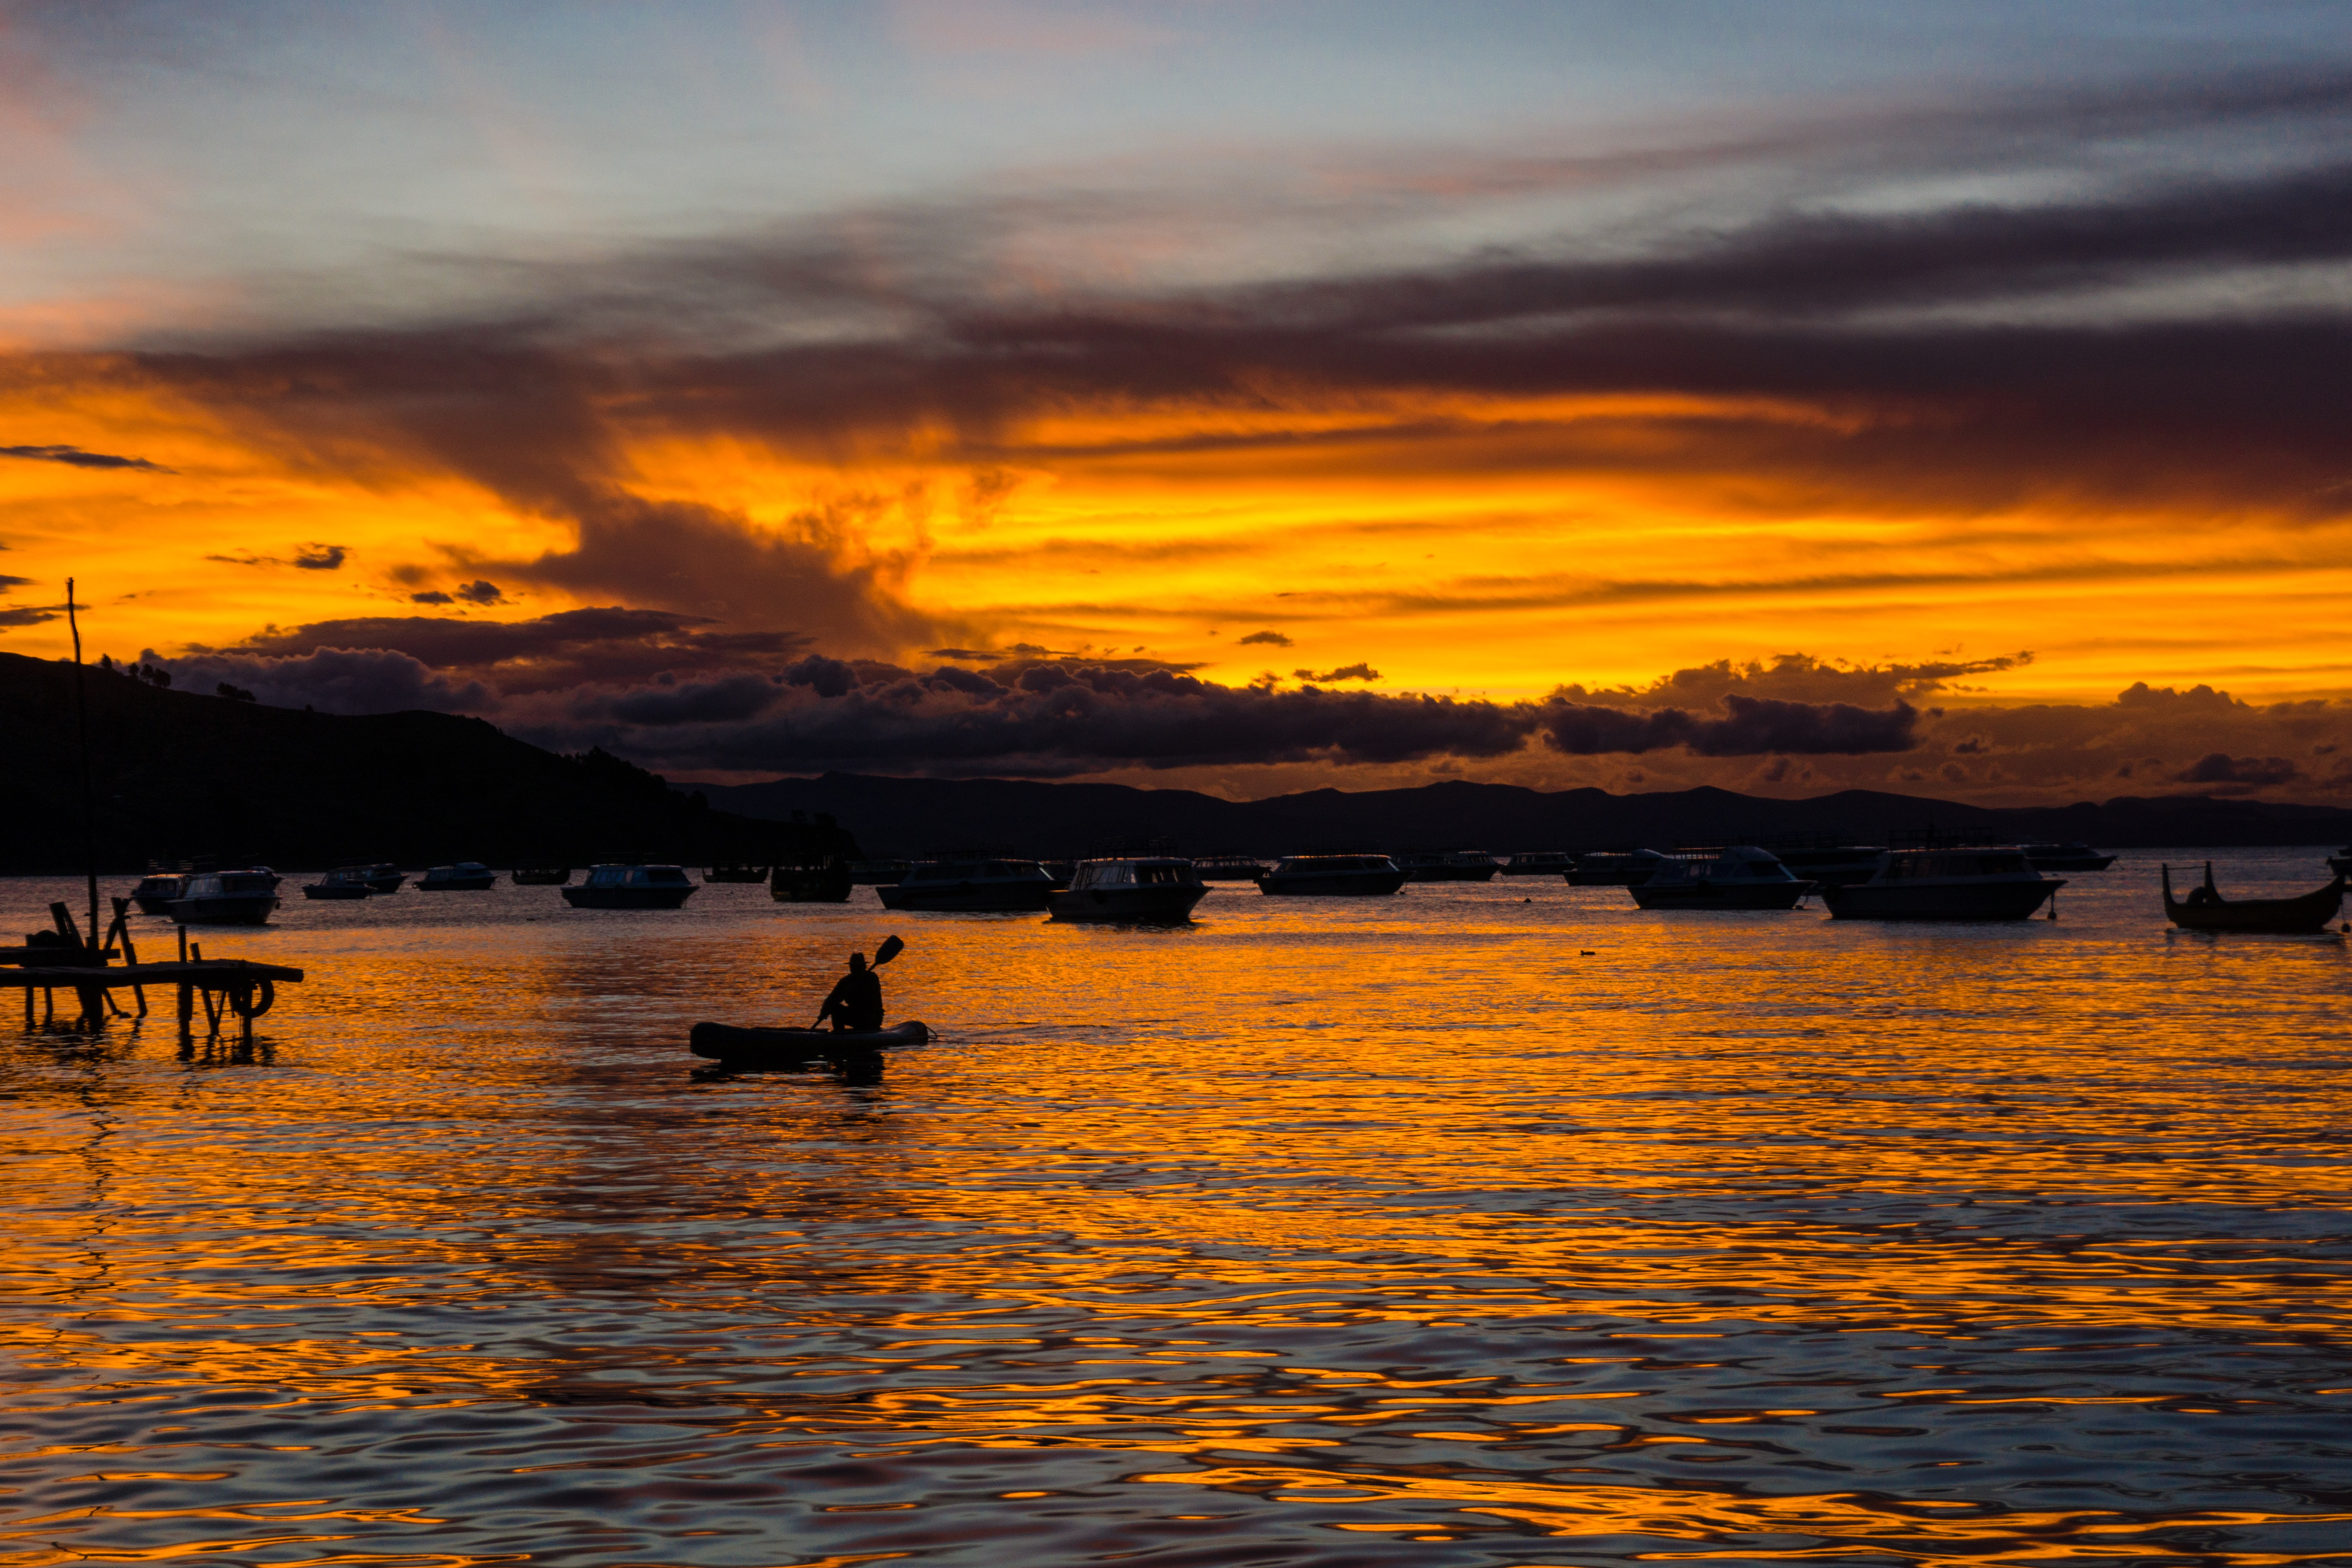 silhouette of person riding on boat during golden hour